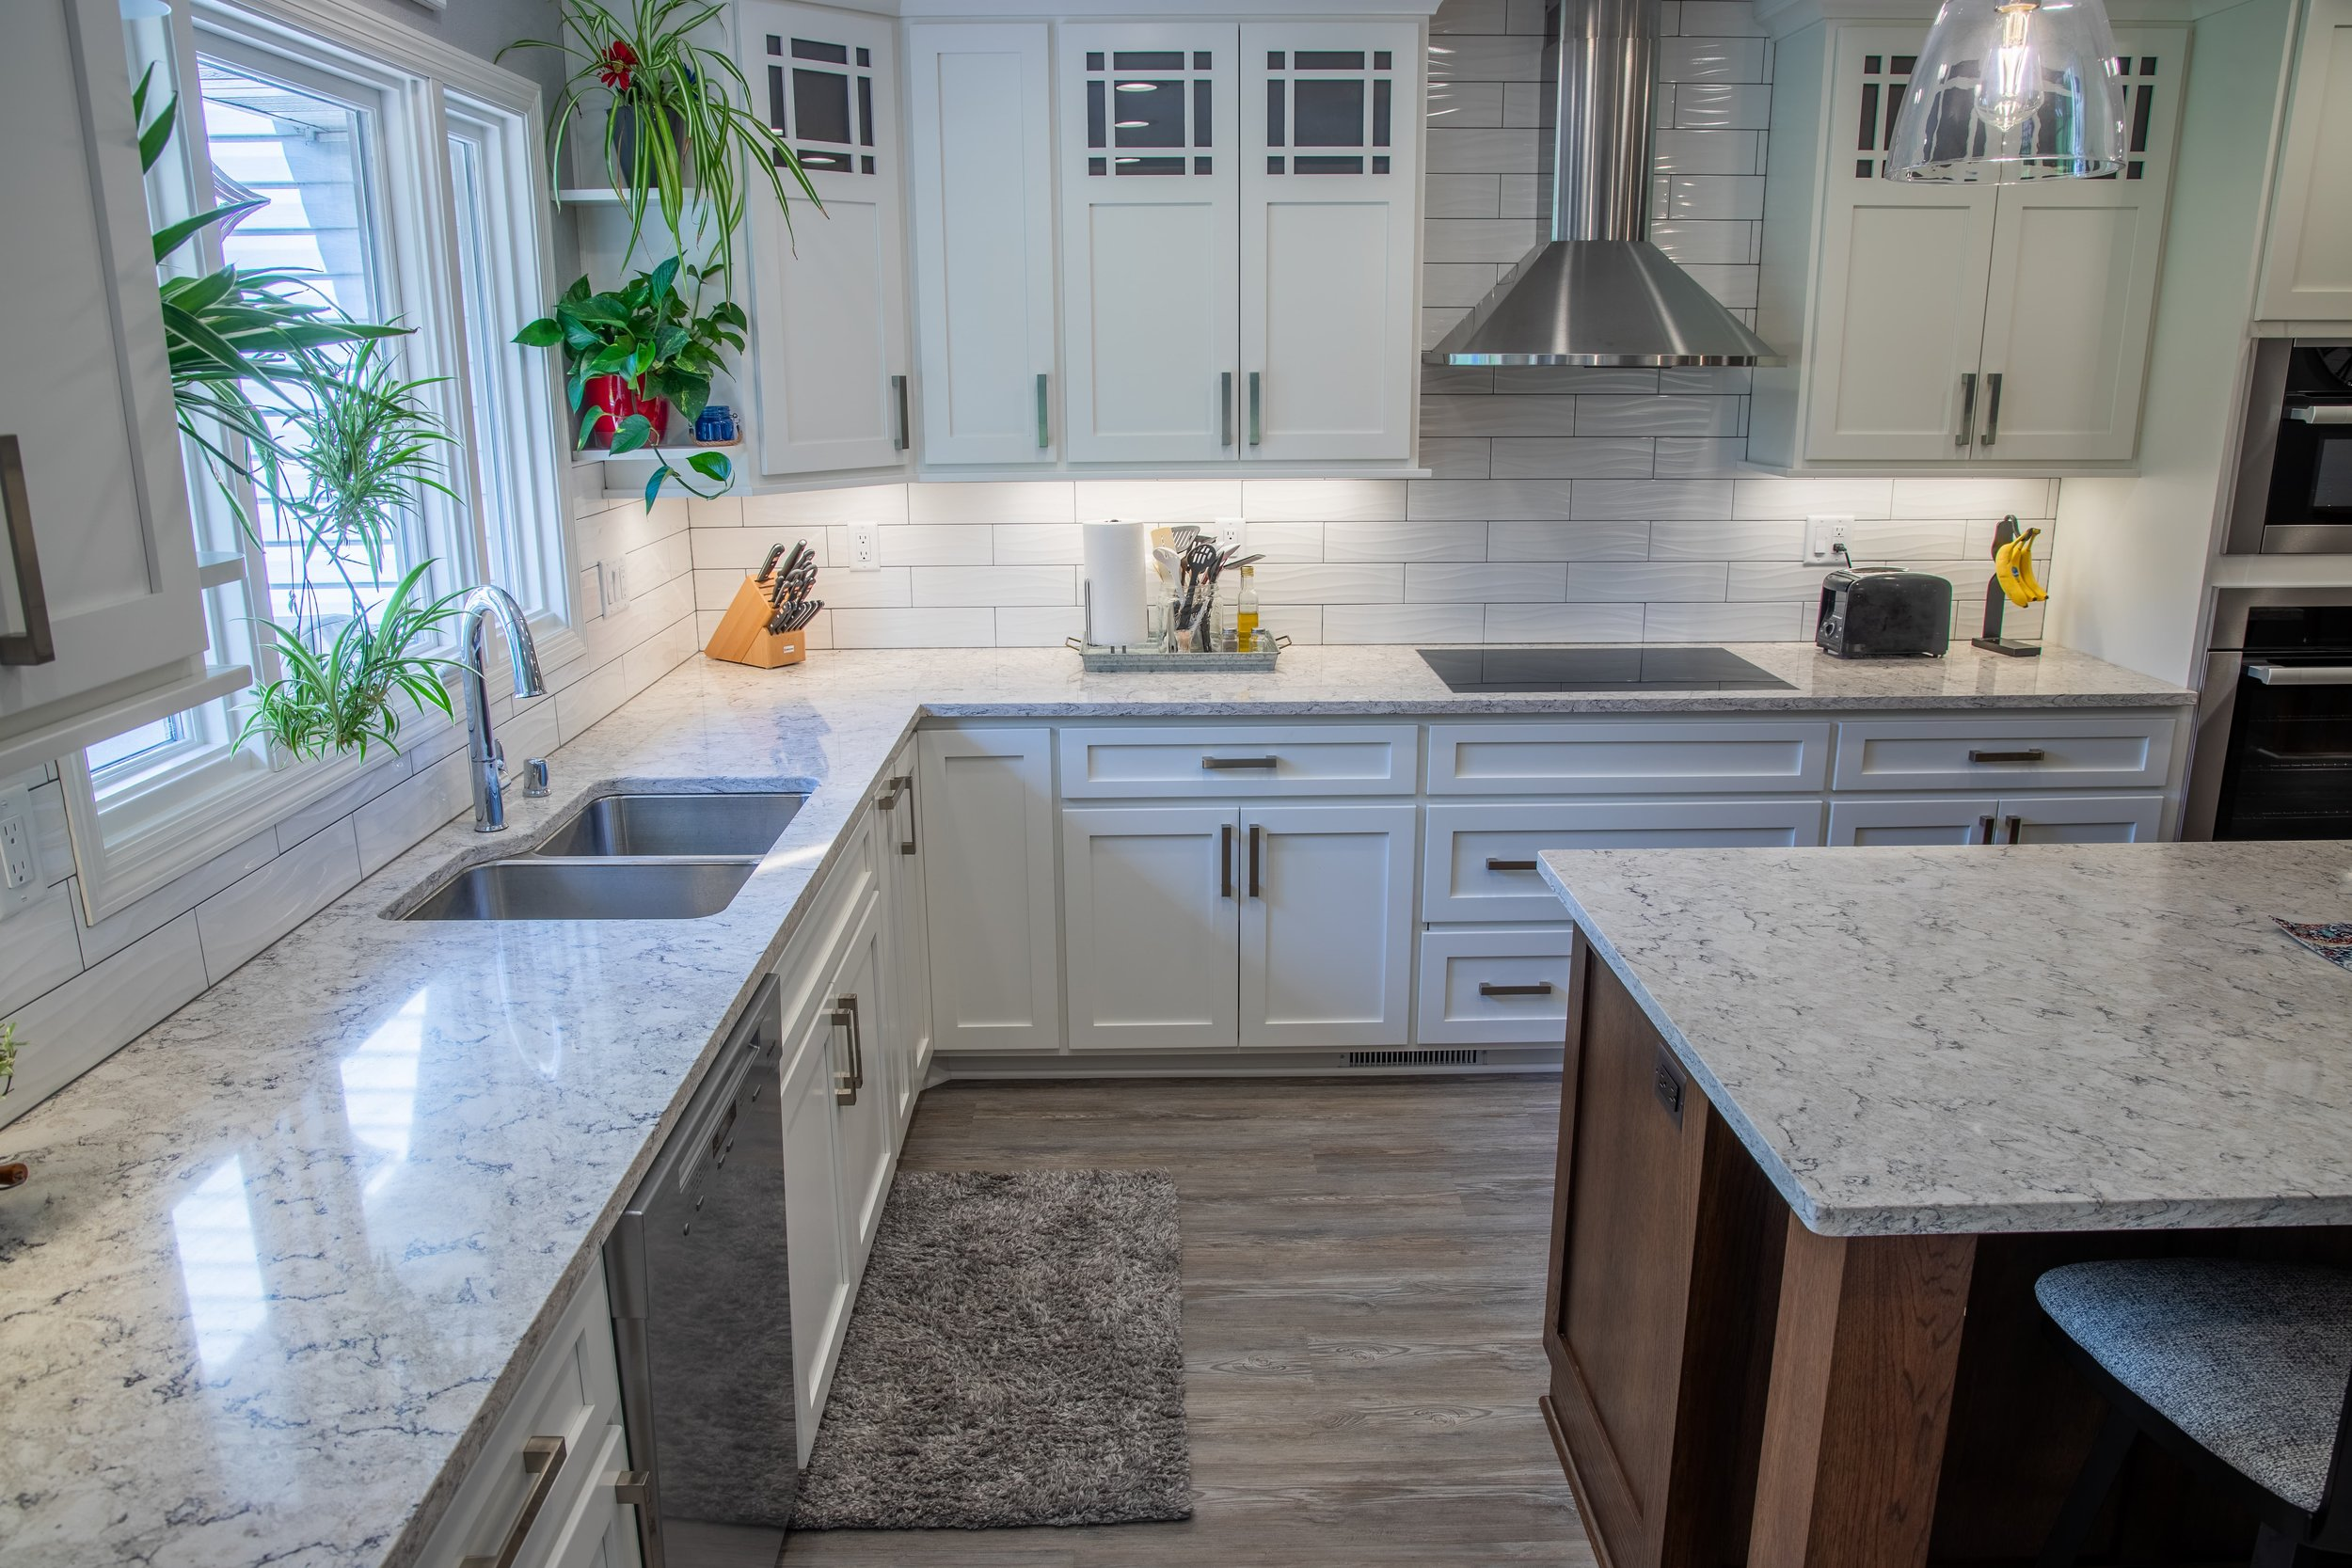 kitchen-remodel-renovate-madison-wi-4.jpg